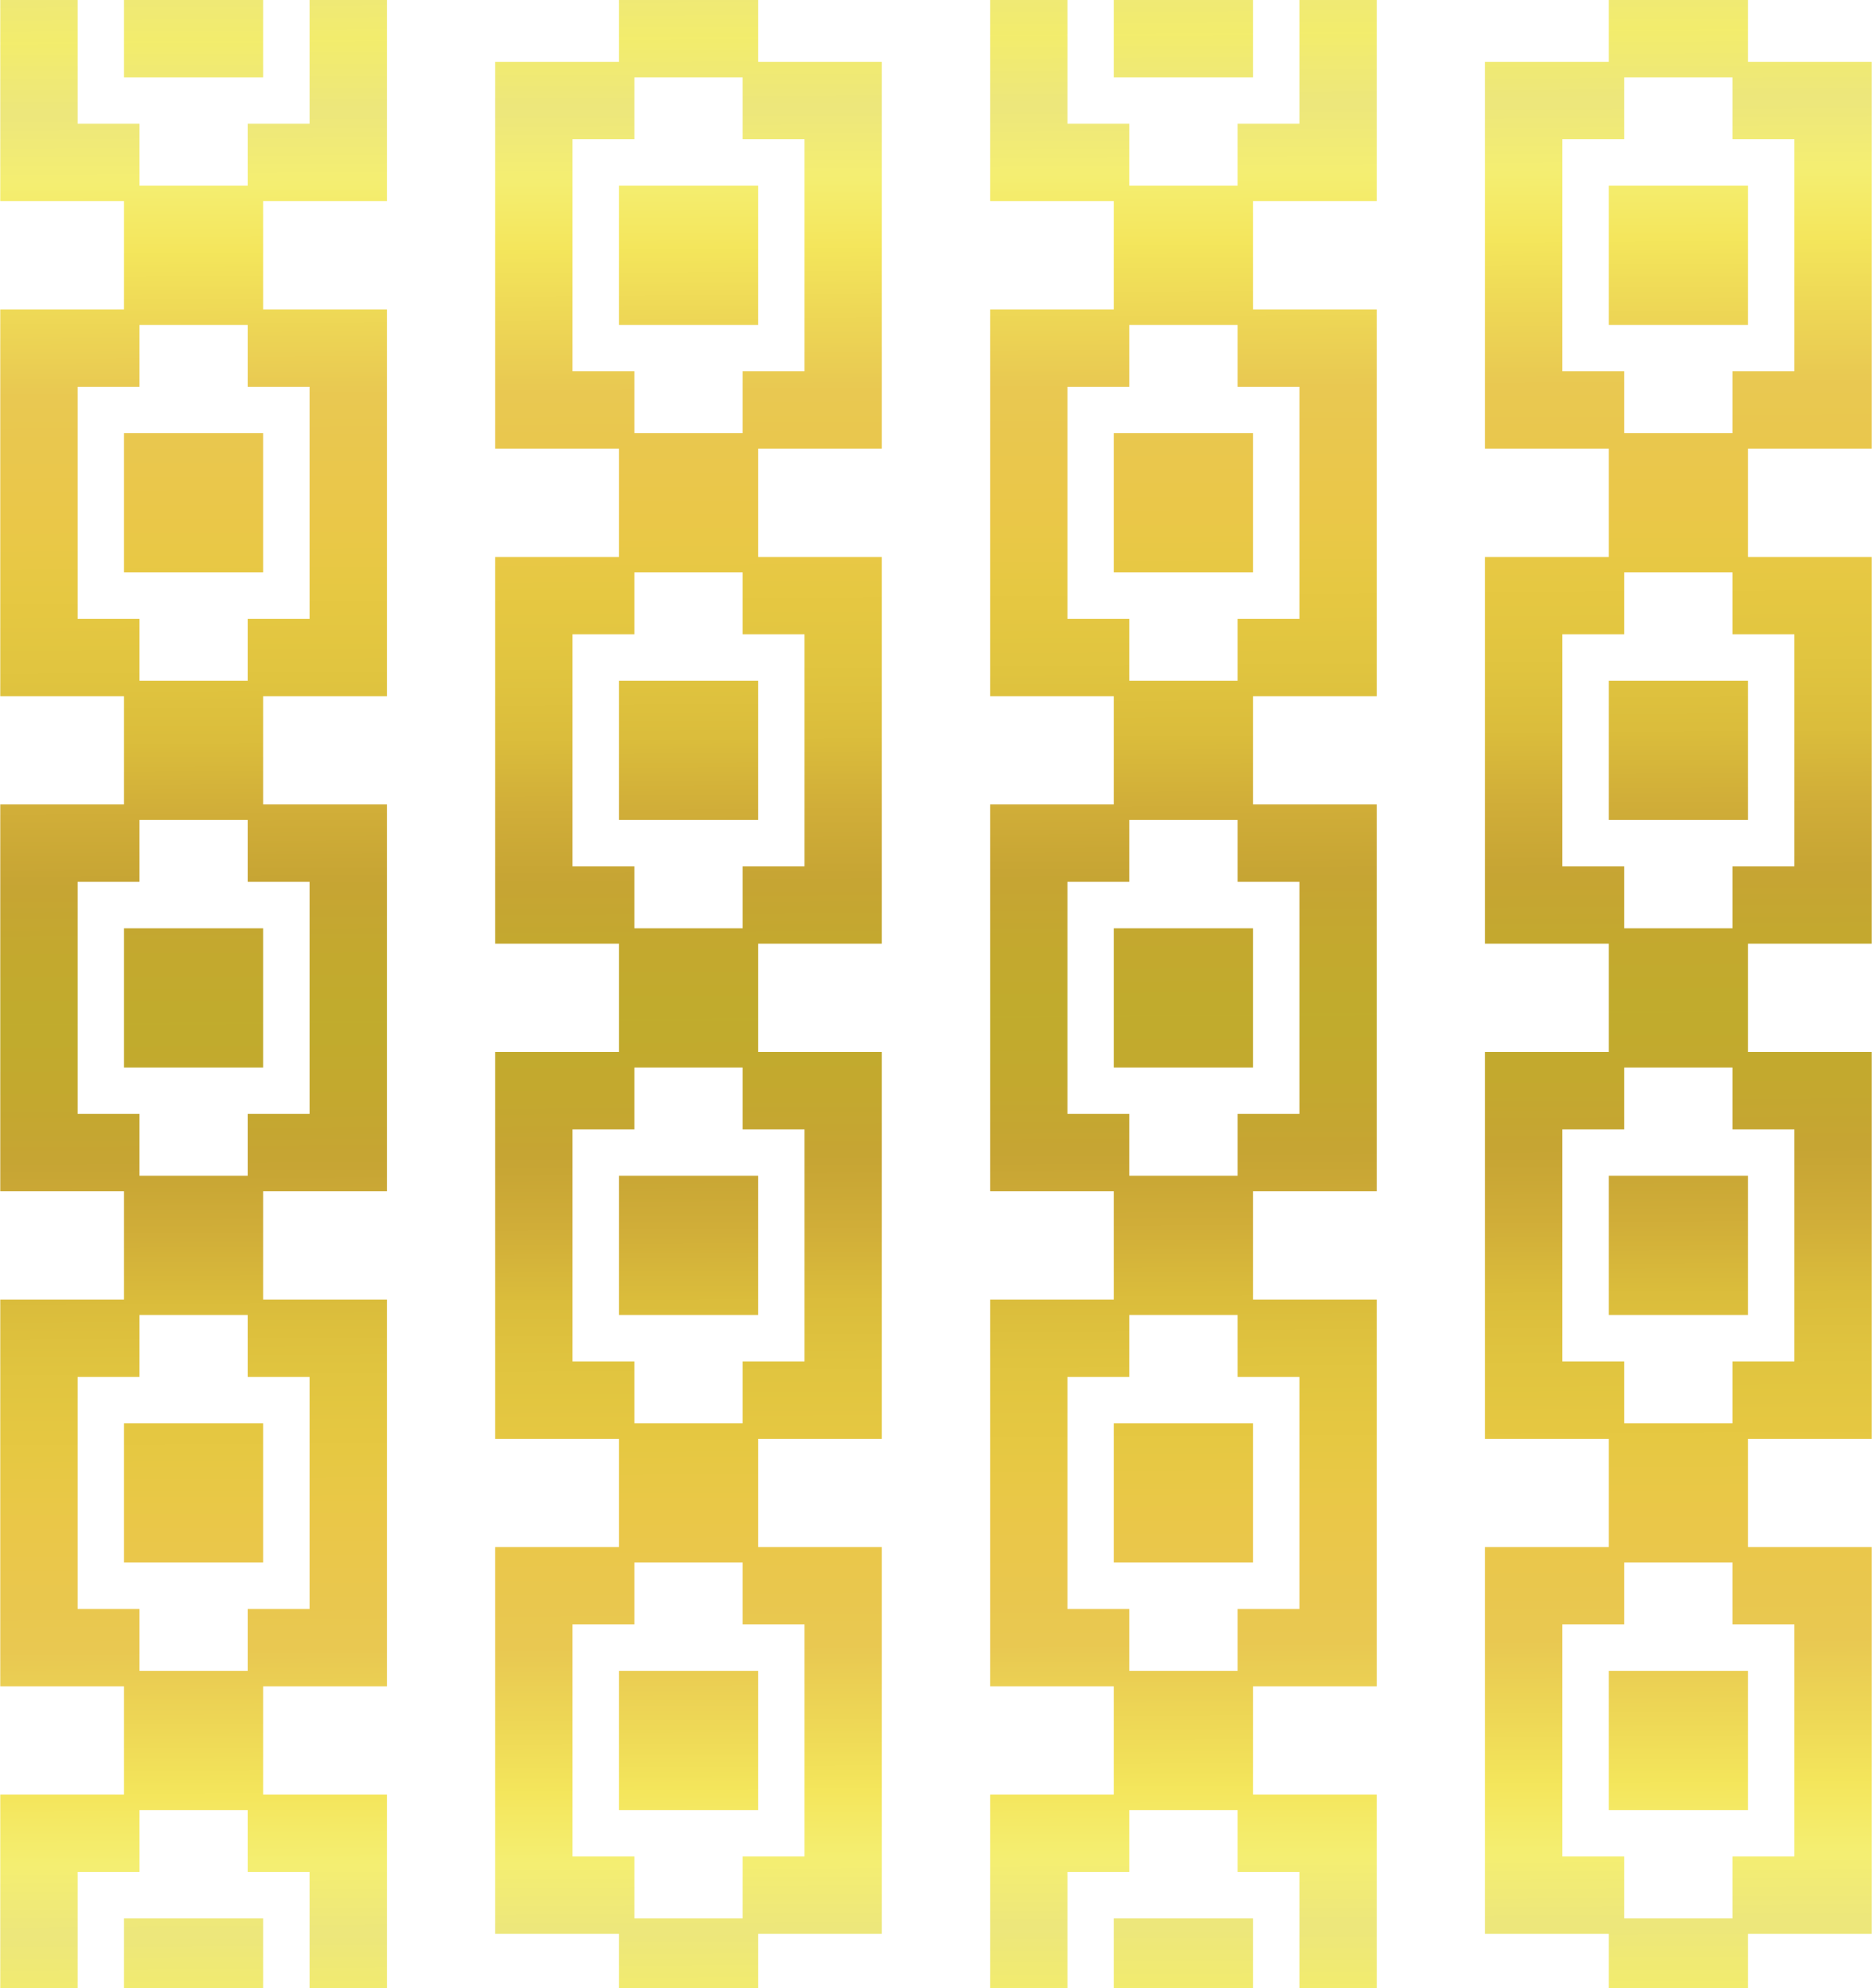 Square clipart square pattern. Gold big image png